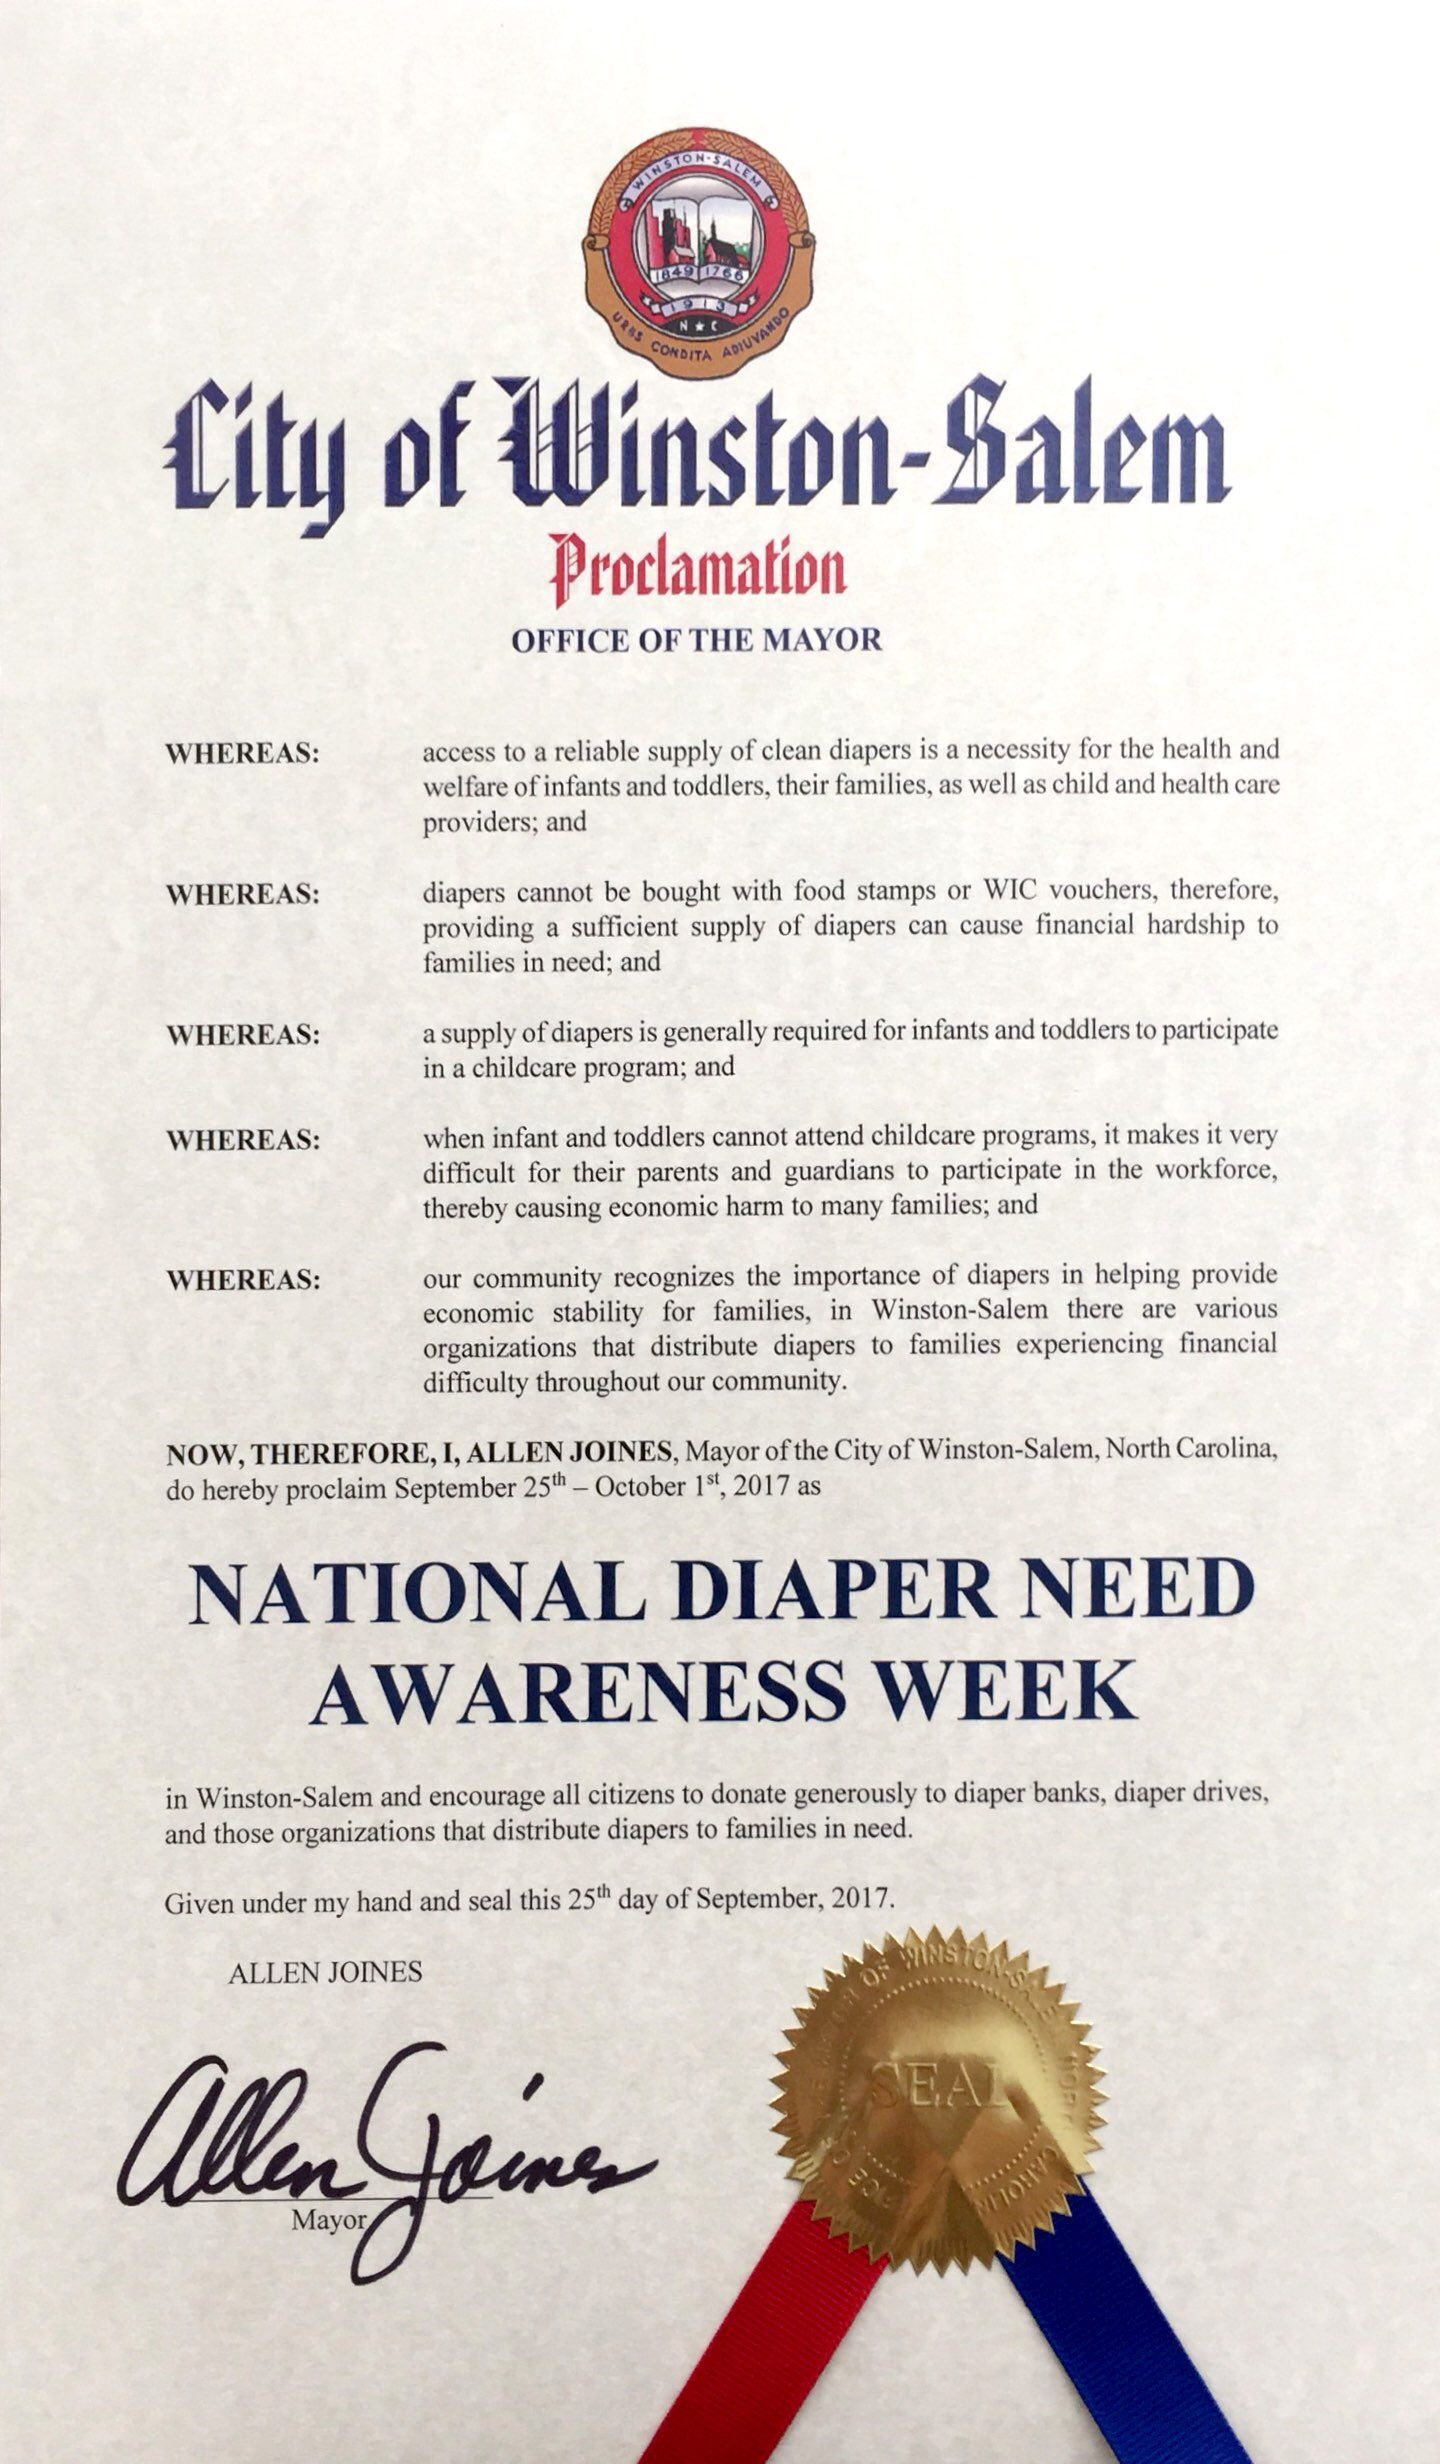 Pin by National Diaper Bank Network on 2017 Diaper Need